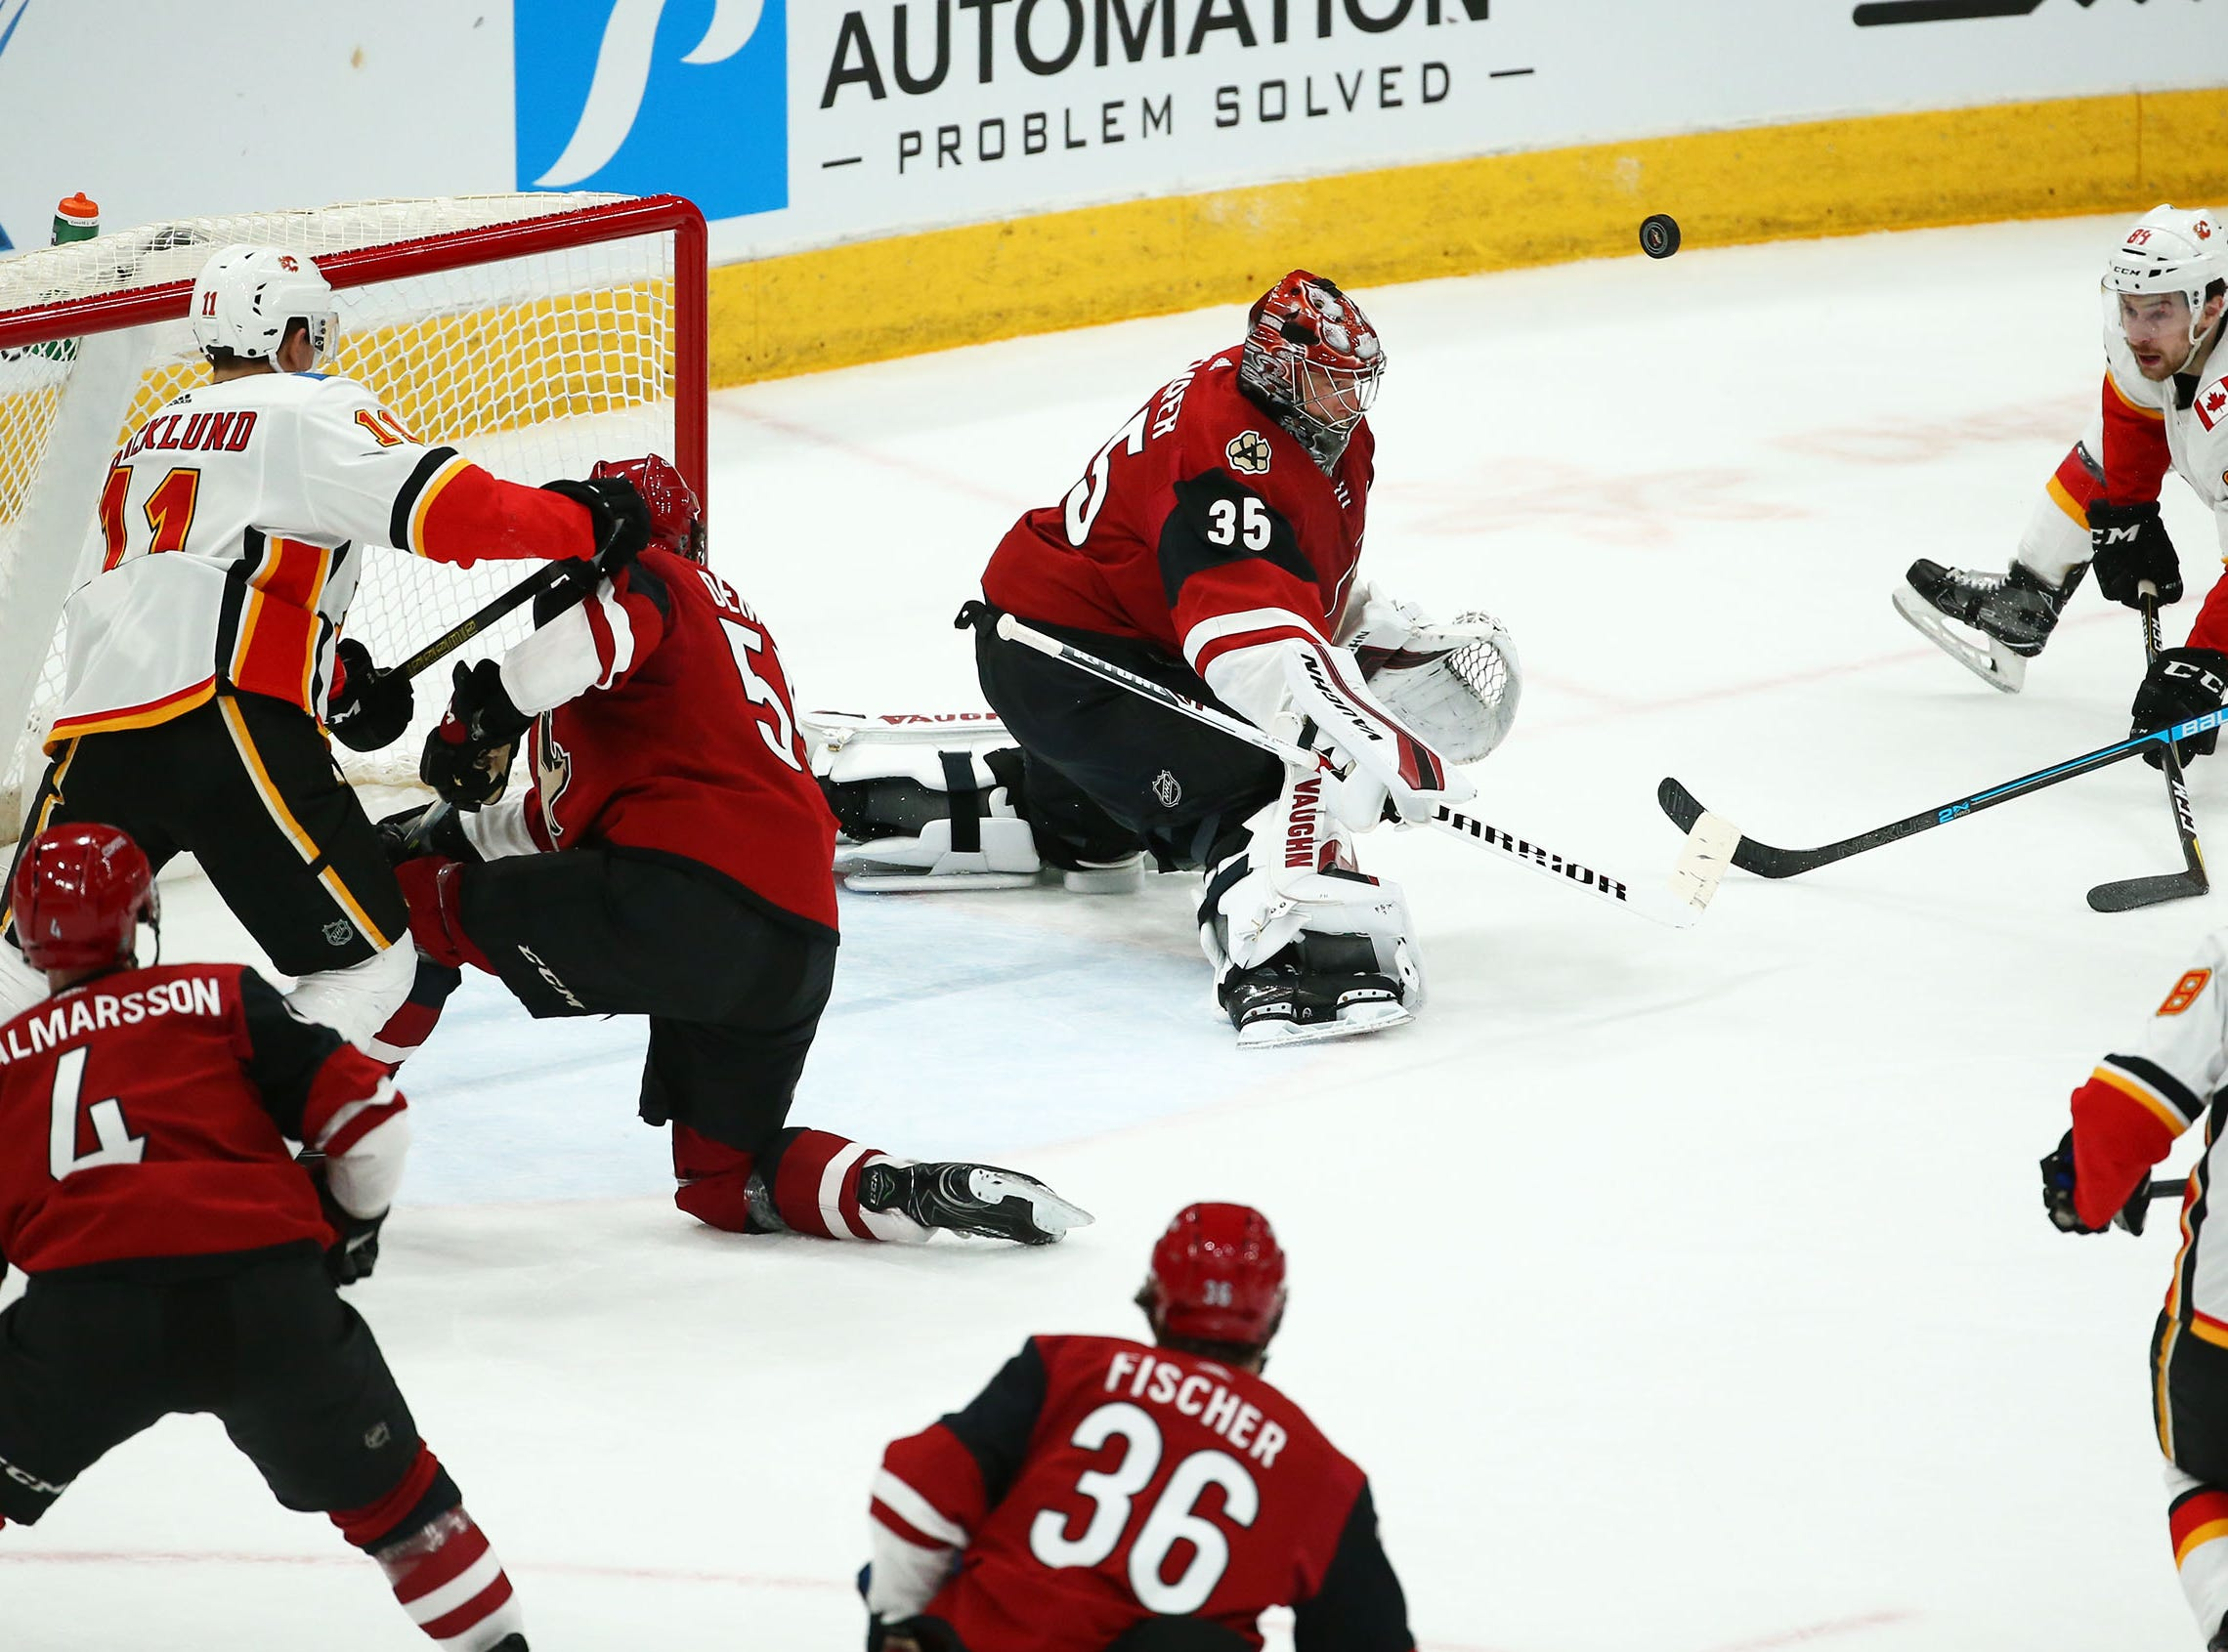 Arizona Coyotes goaltender Darcy Kuemper (35) blocks a shot by the Calgary Flames in the first period on Mar. 7, 2019, at Gila River Arena in Glendale, Ariz.